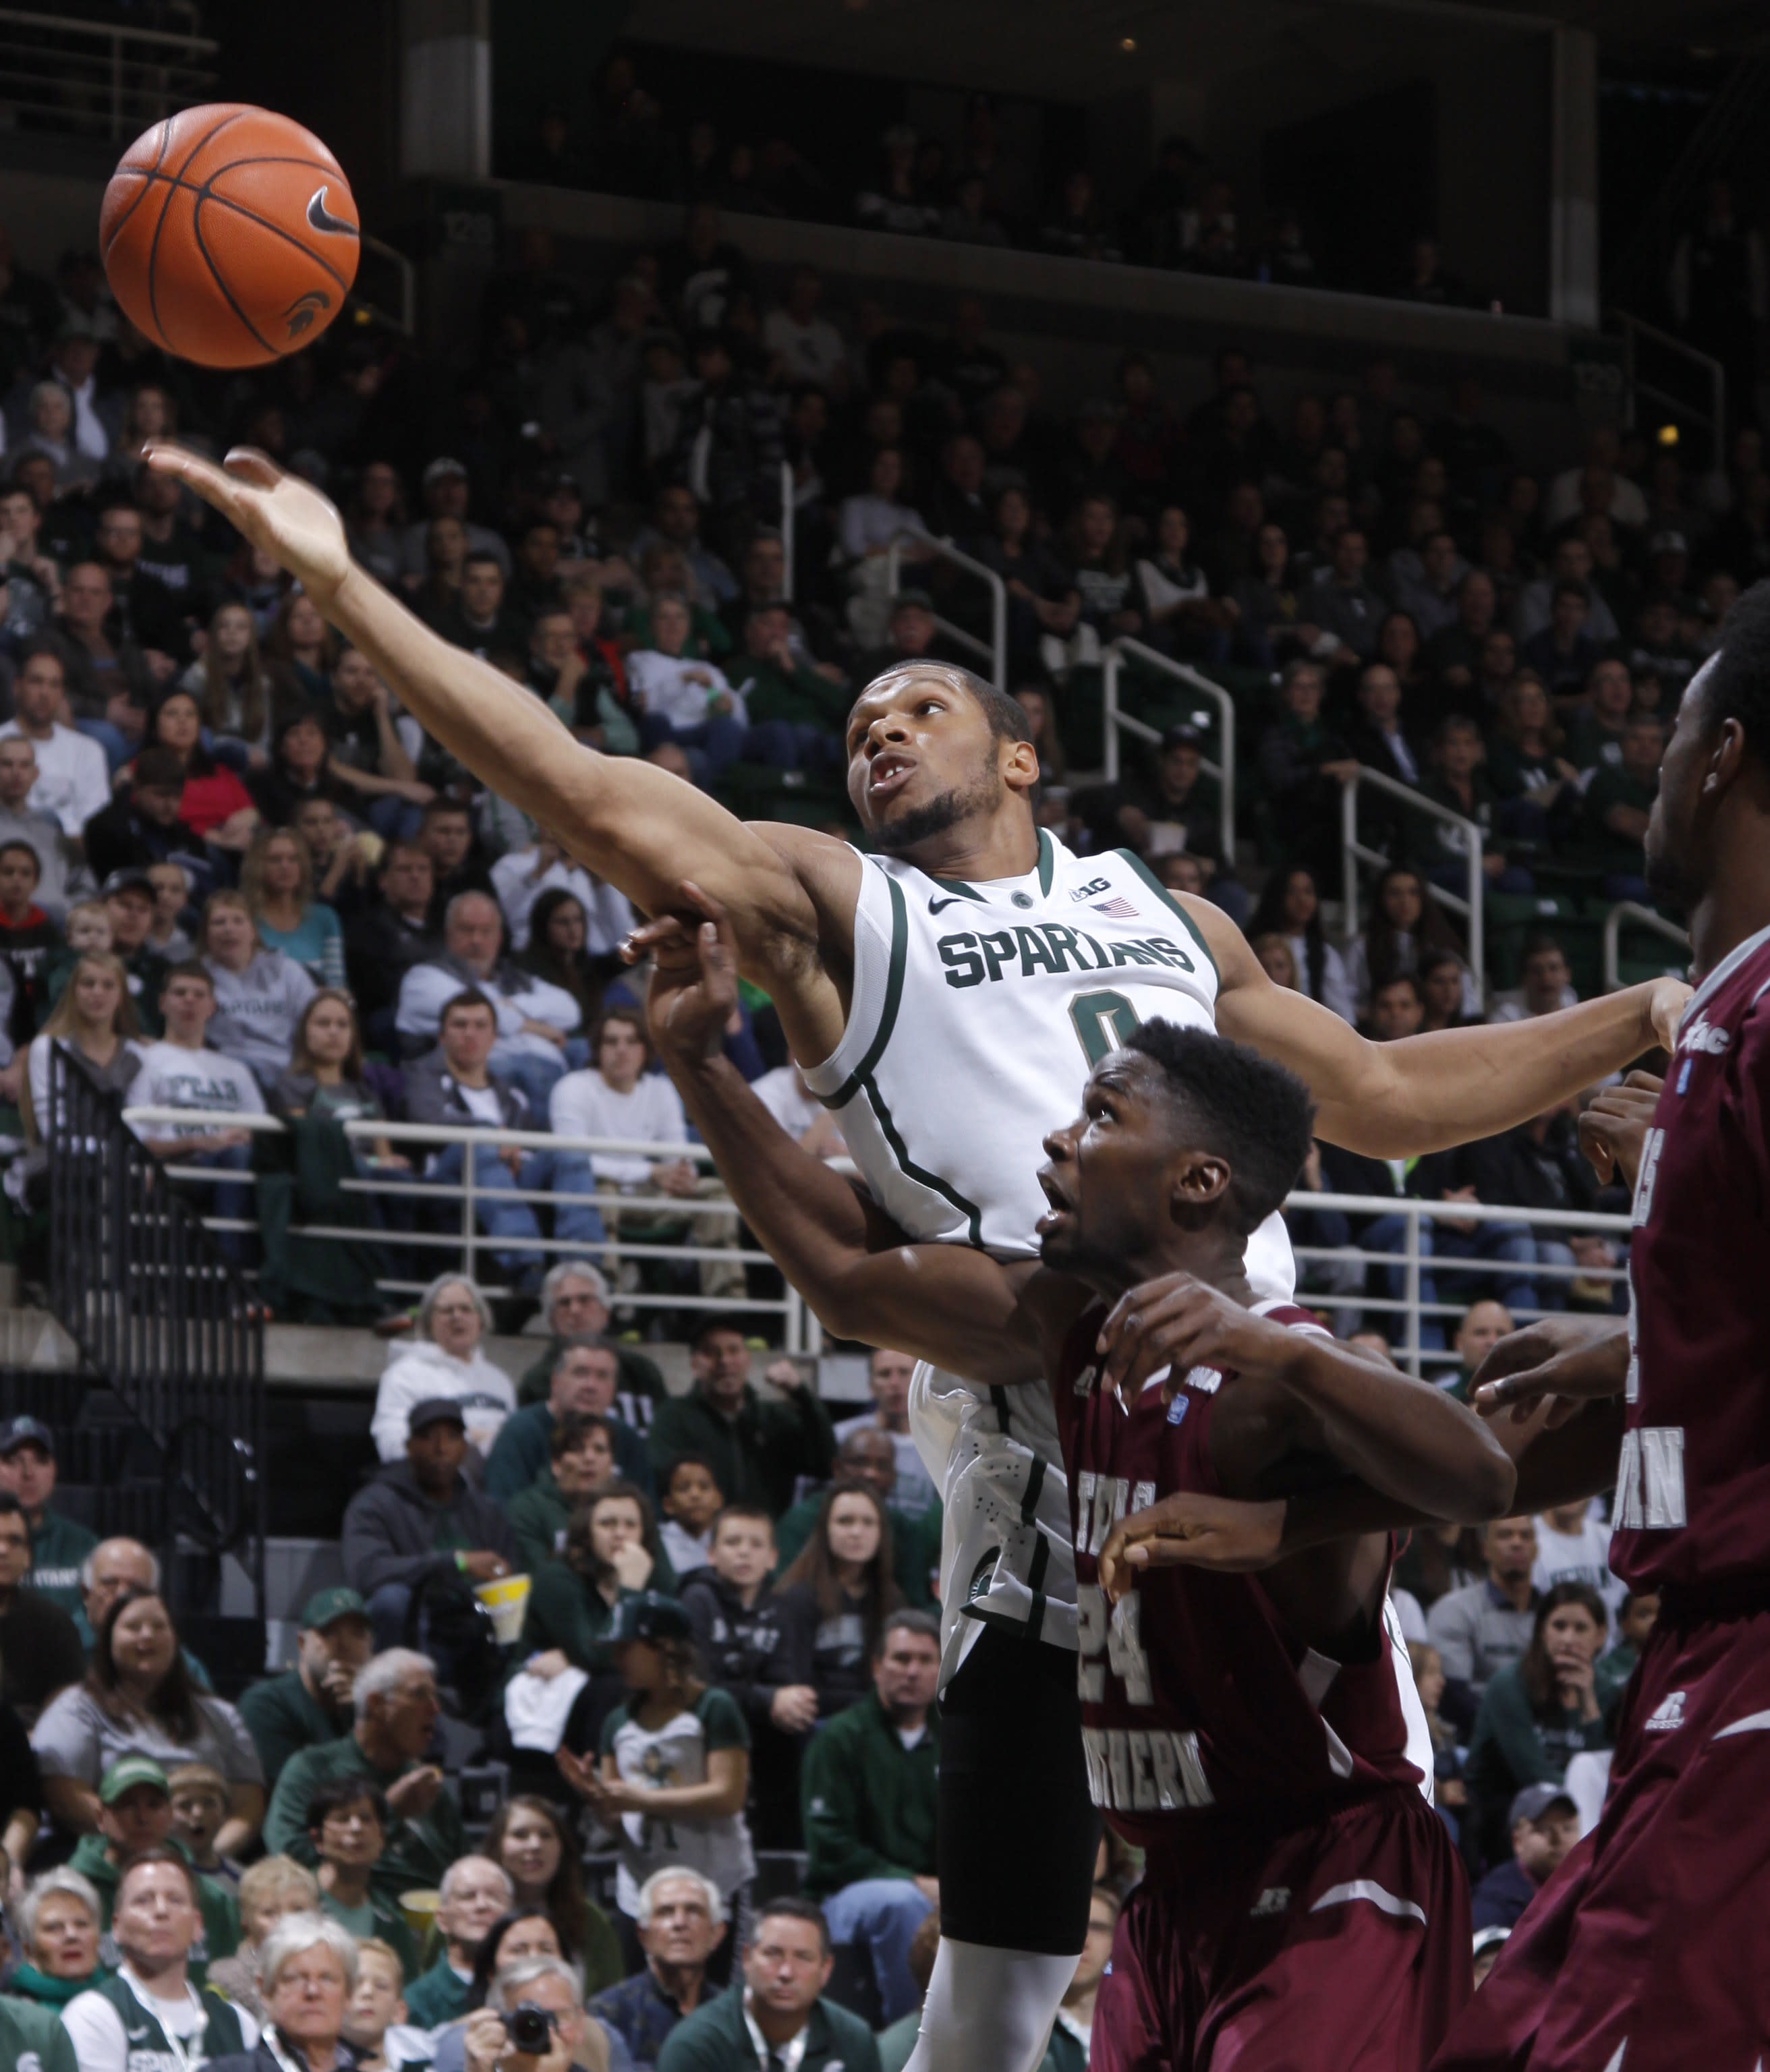 Texas Southern stuns Michigan State 71-64 in OT